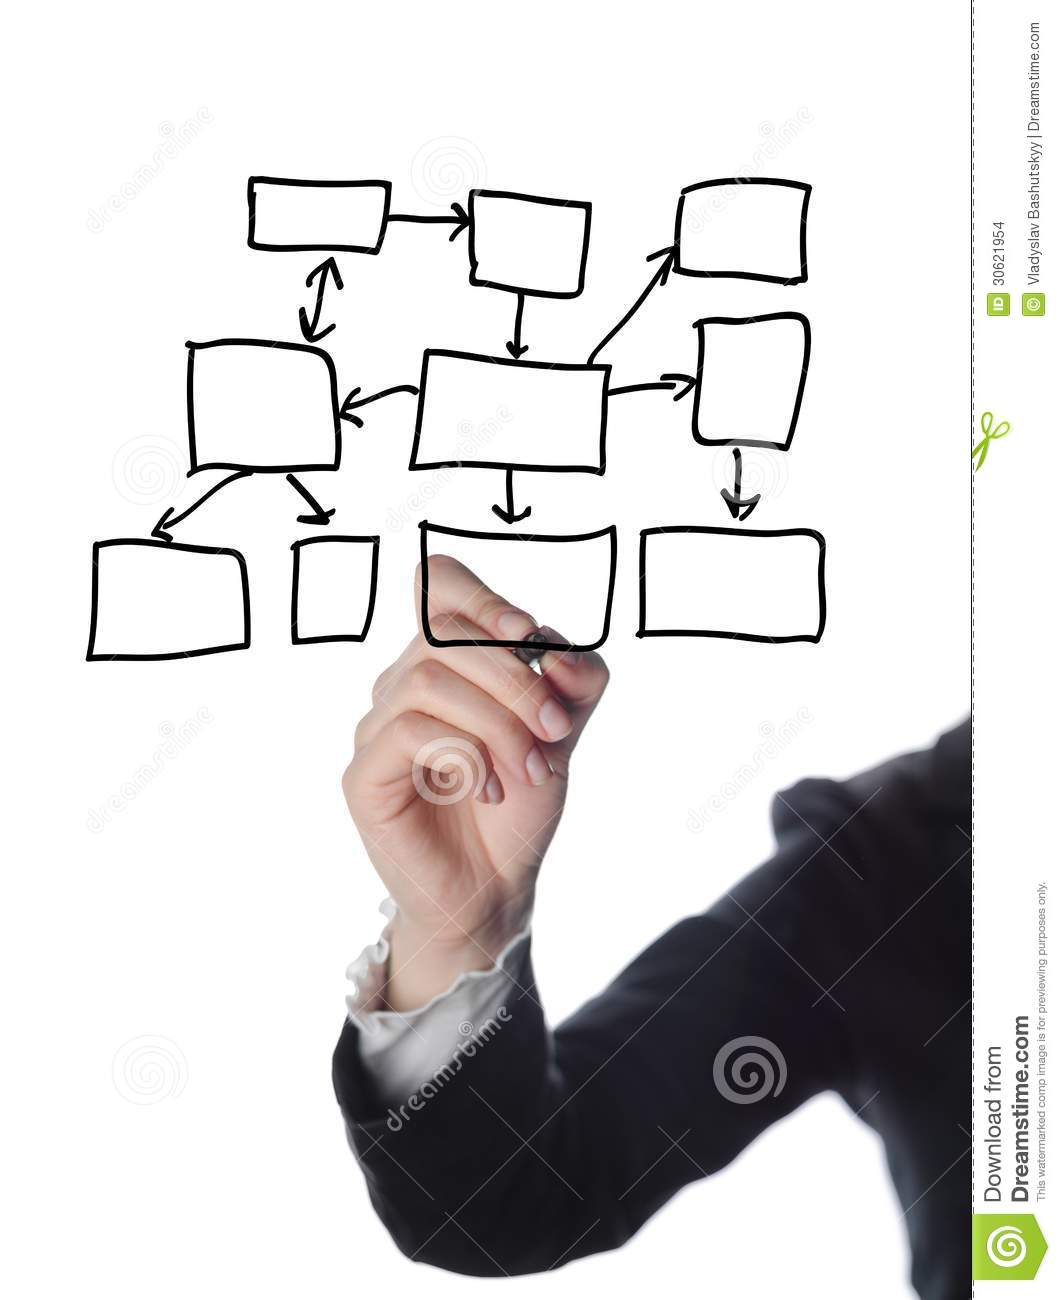 Business Man Writing Process Flowchart Diagram Stock Images.